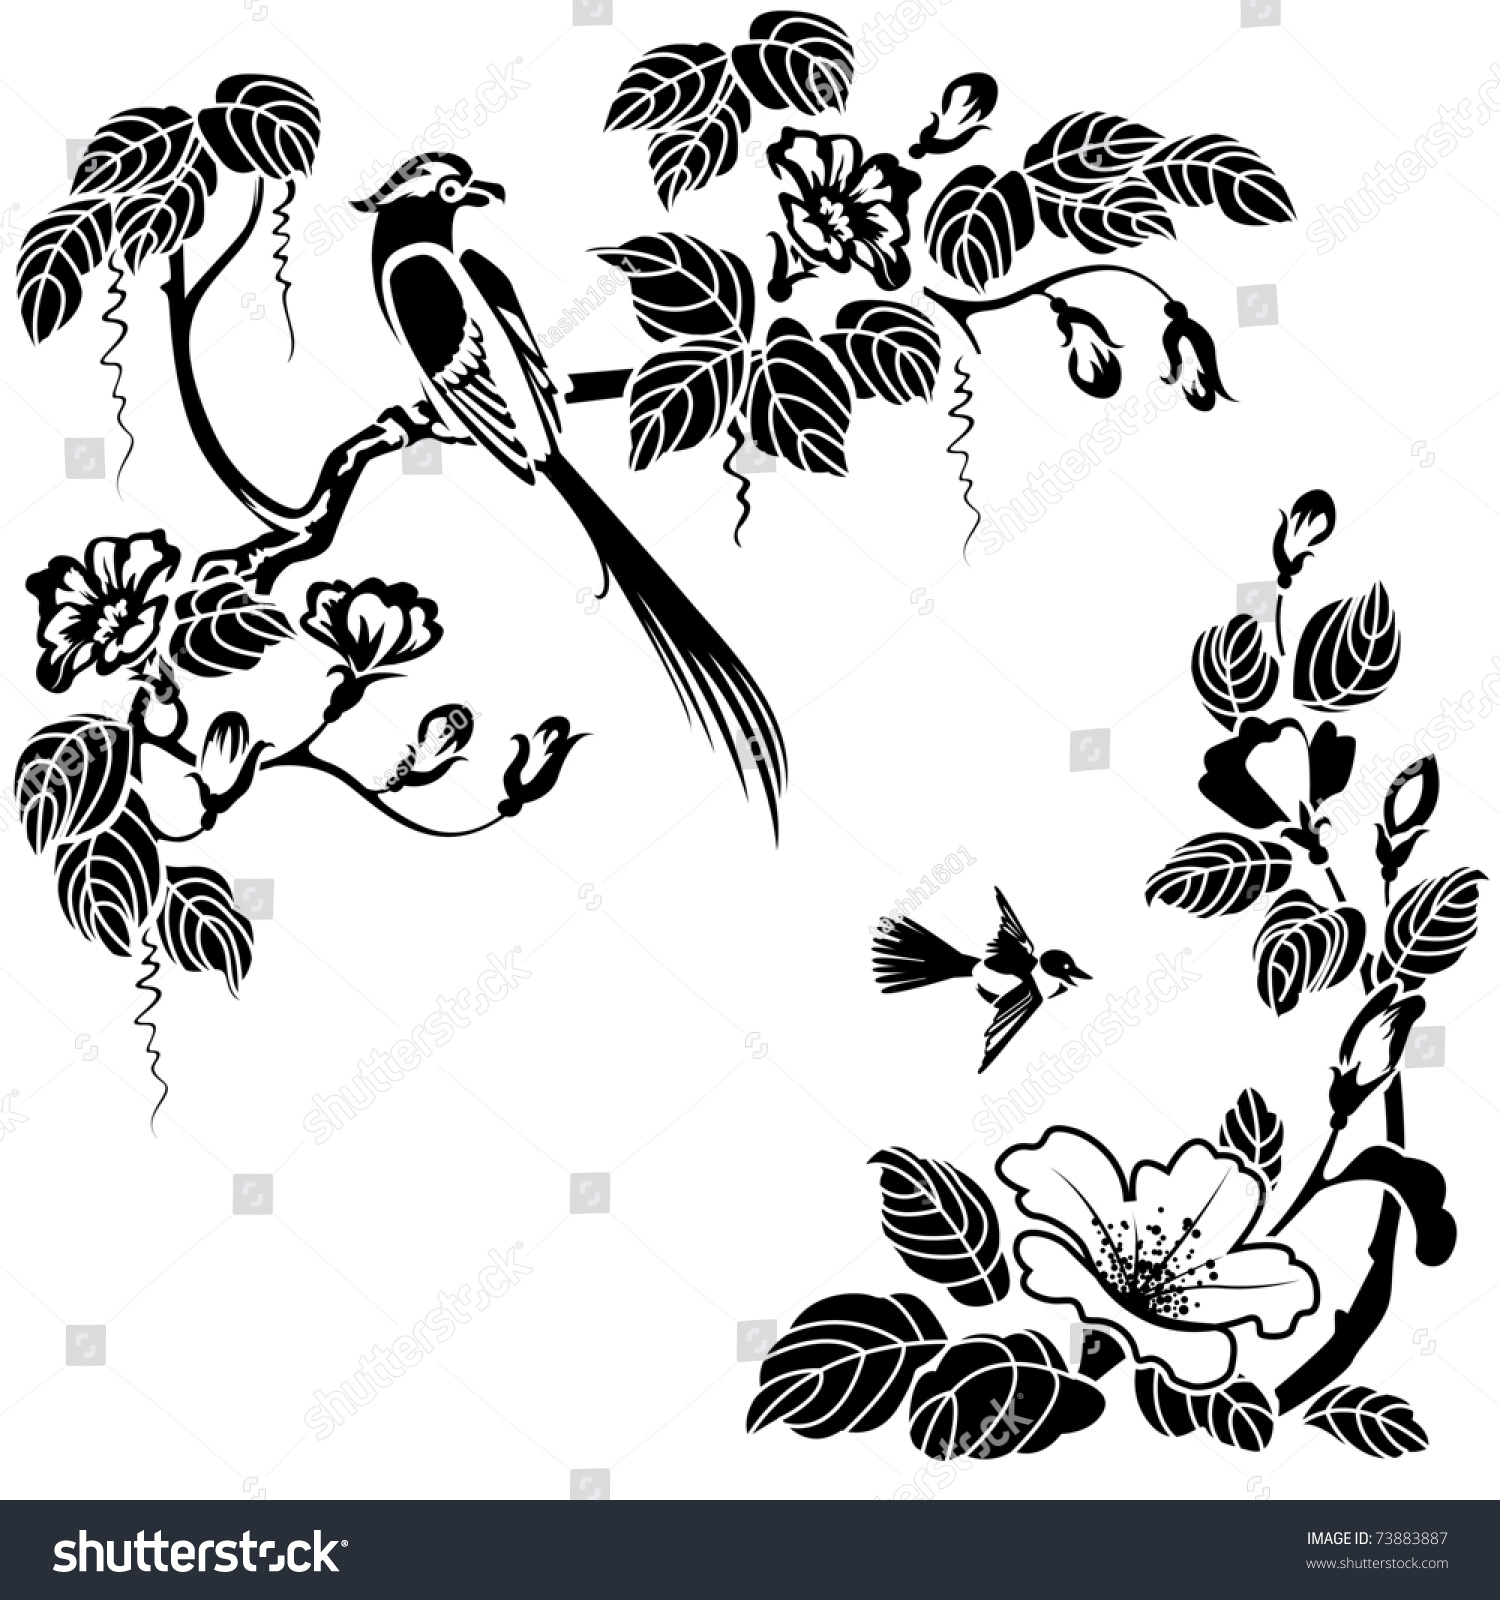 Flowers Made Black Brids: Flowers And Birds In The Oriental Style. Black And White